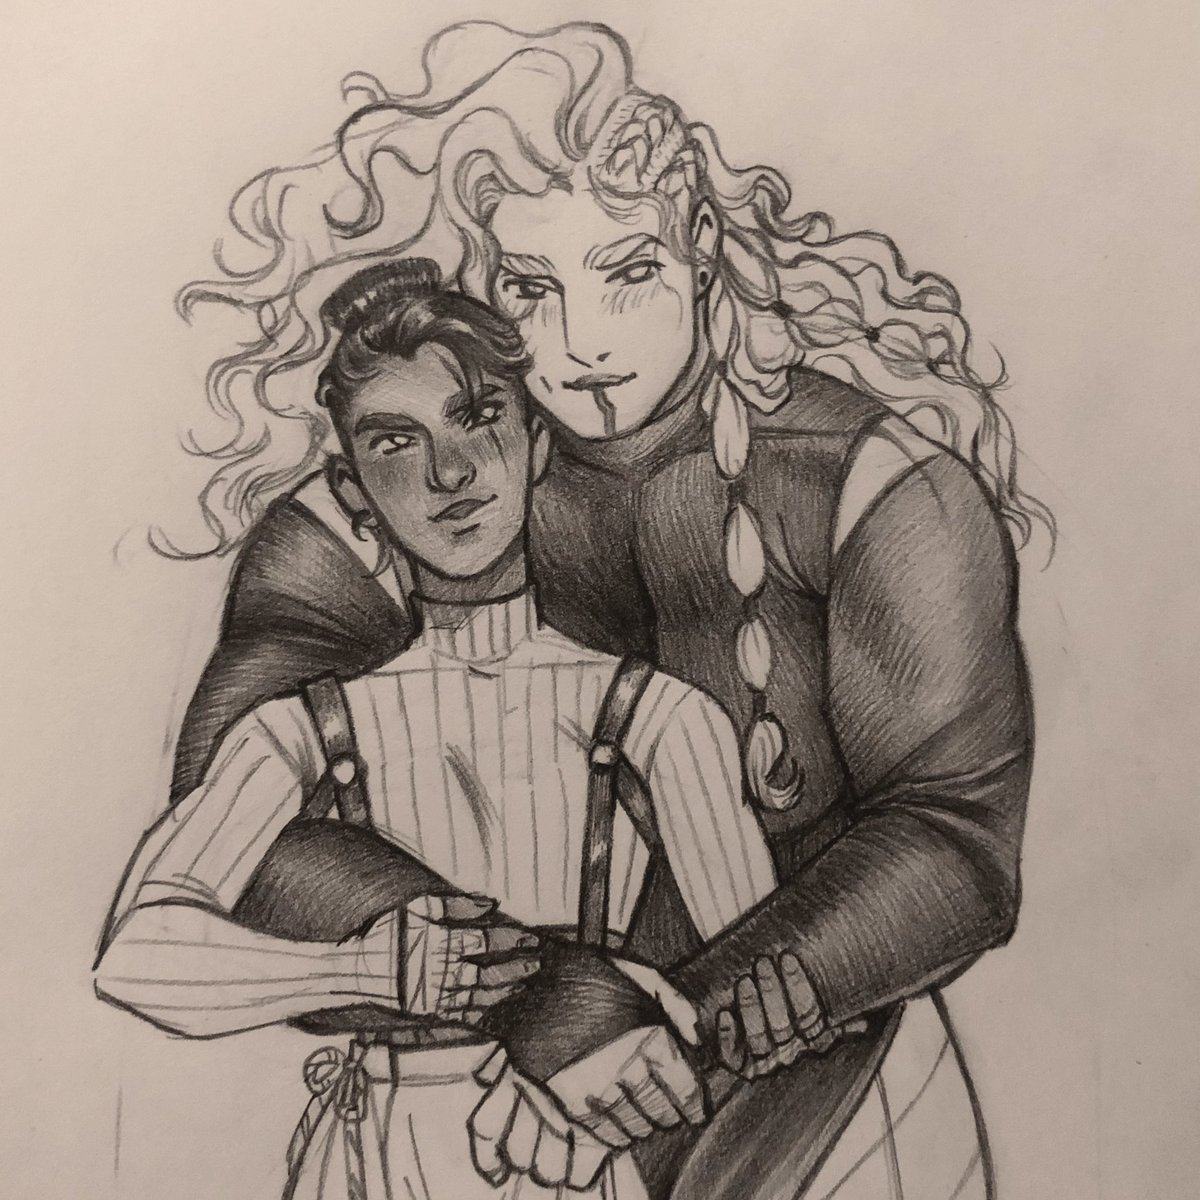 Replying to @Mister_QT: Wow tonight's ep was brutal buut anyways here are the gays #beauyasha #criticalrolefanart